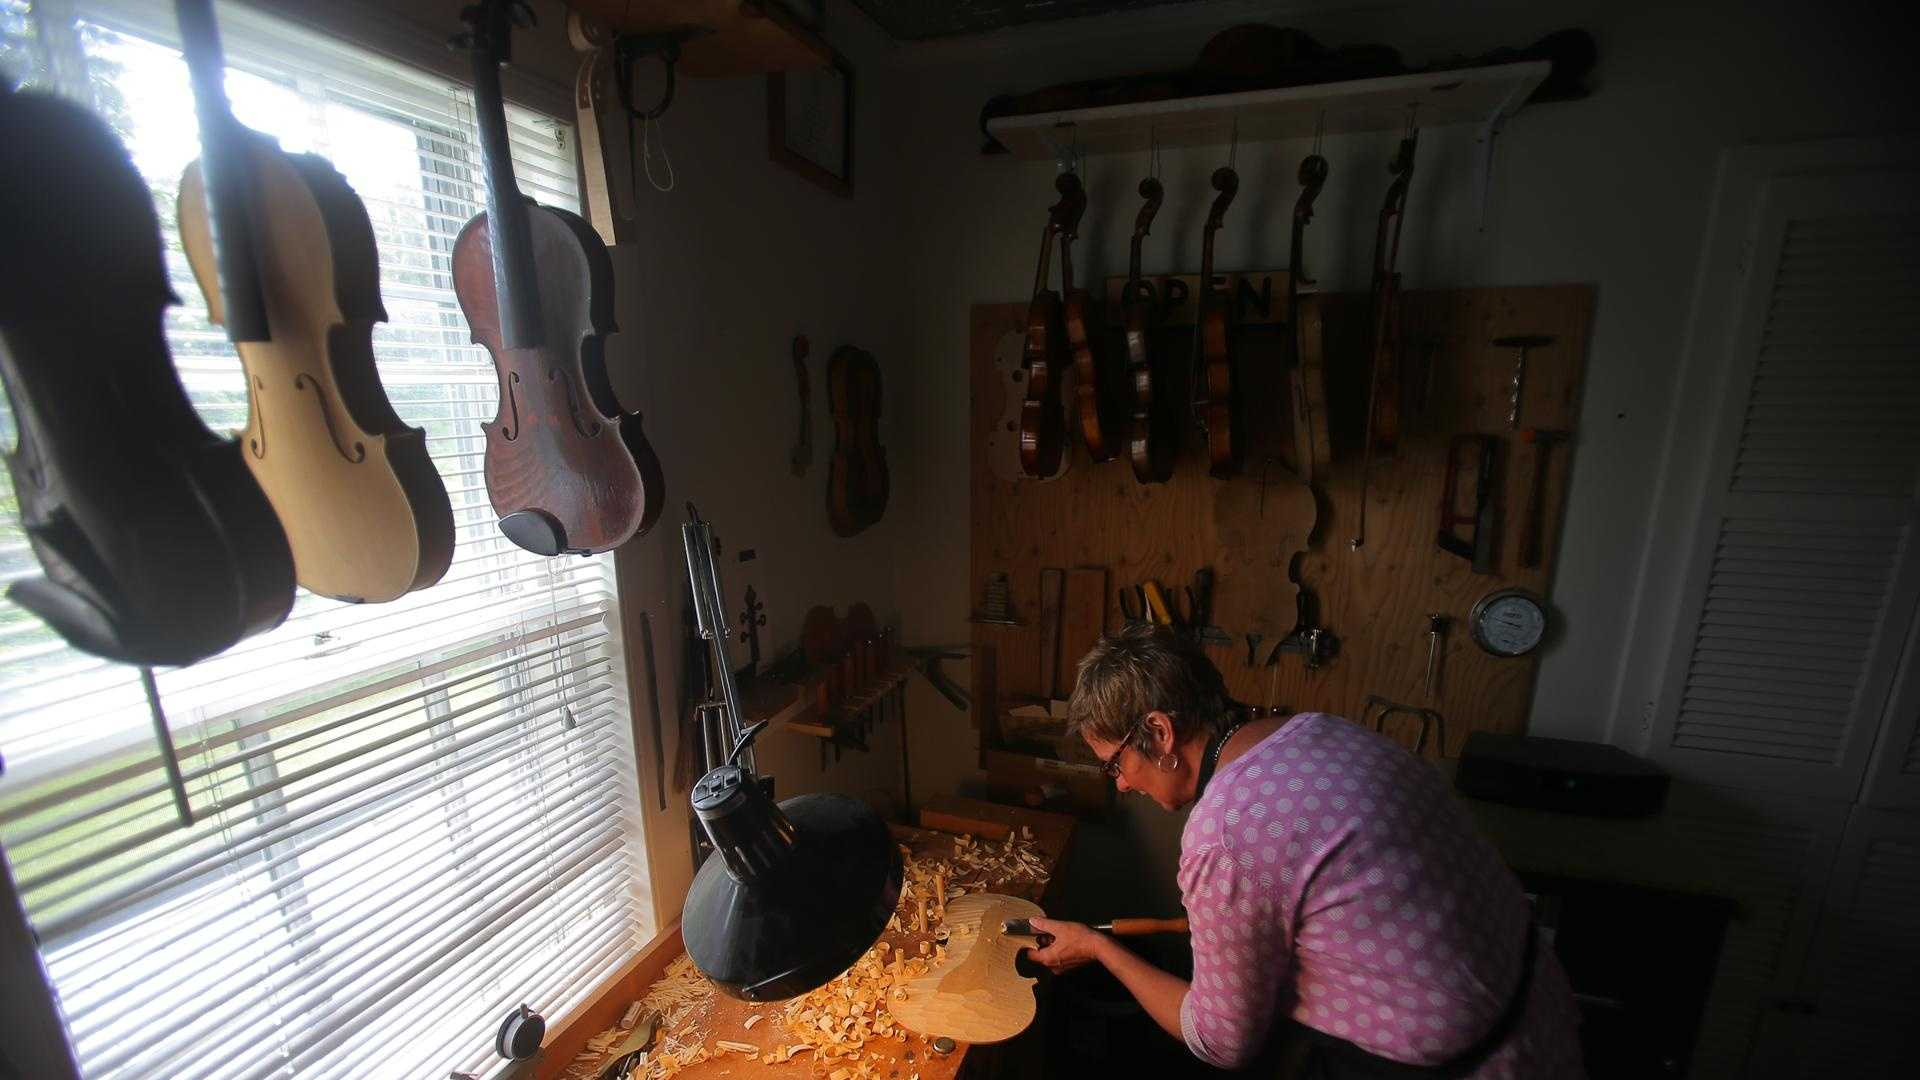 Rosemary Clancy Violin Maker